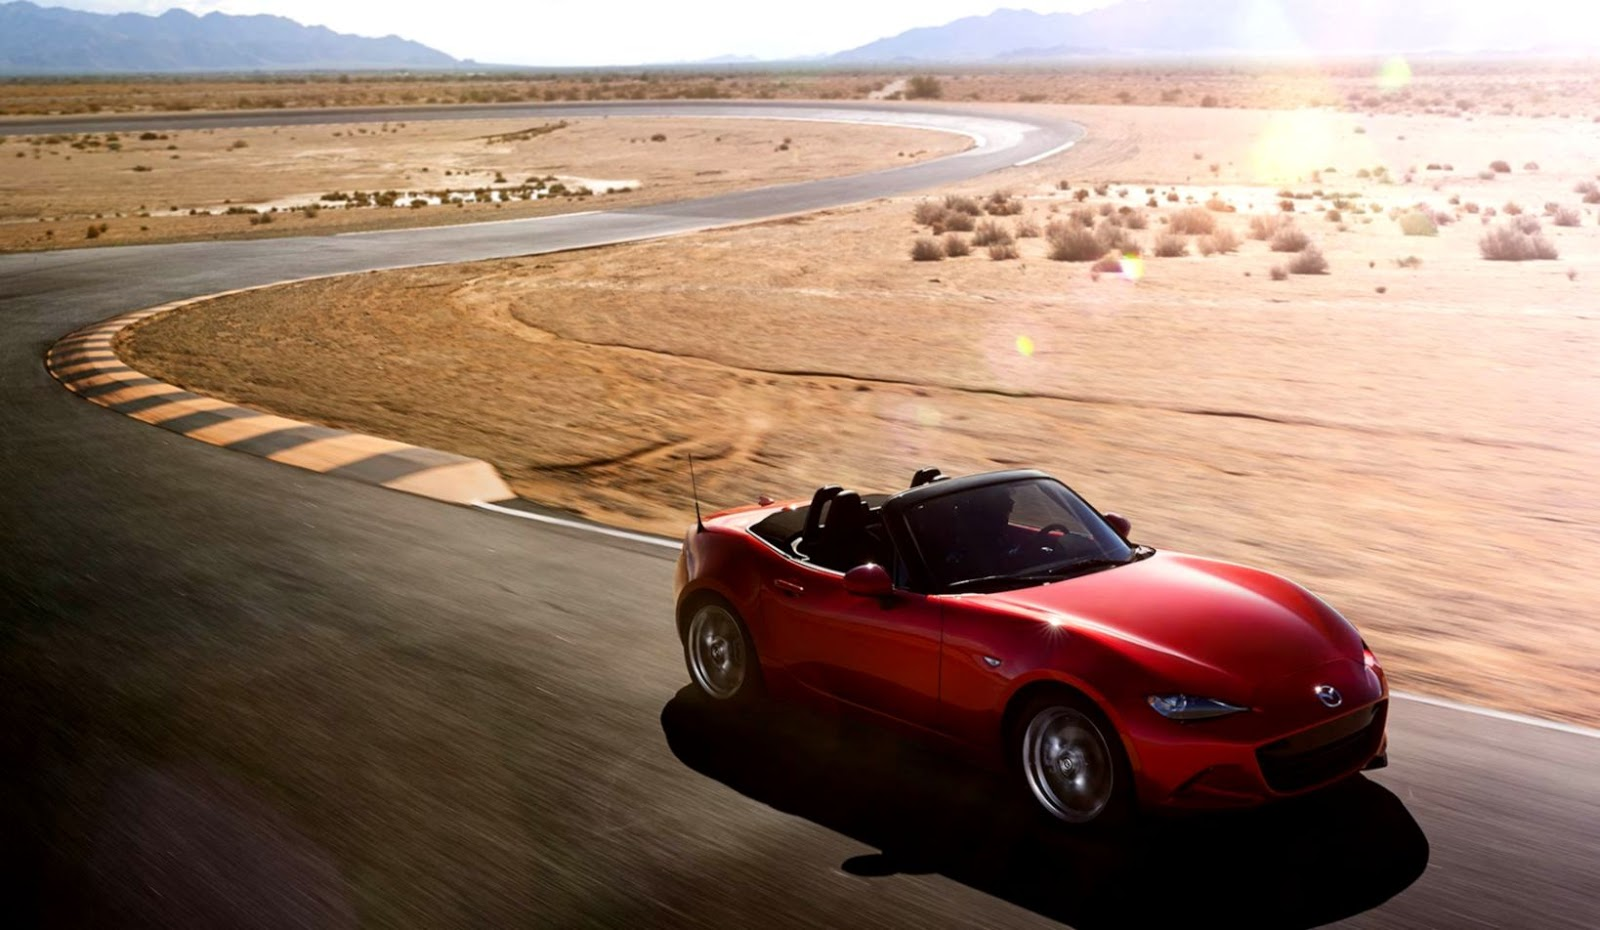 Mazda Miata Mx 5 Road Hd Wallpaper Gandoss Wallpapers